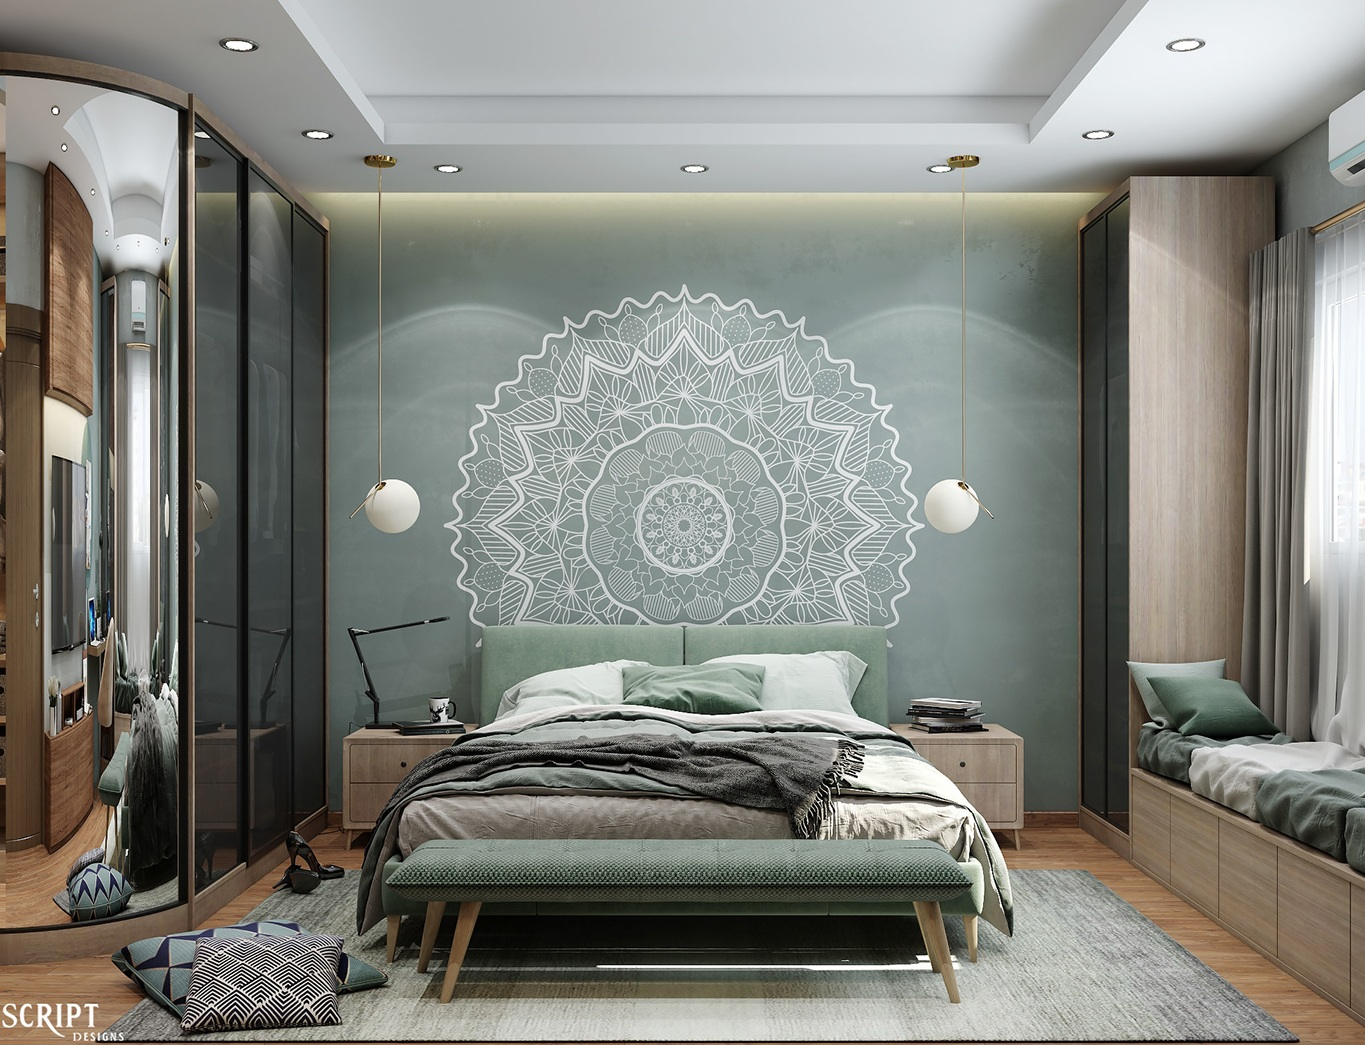 Aesthetically pleasing master bedroom idea for your home